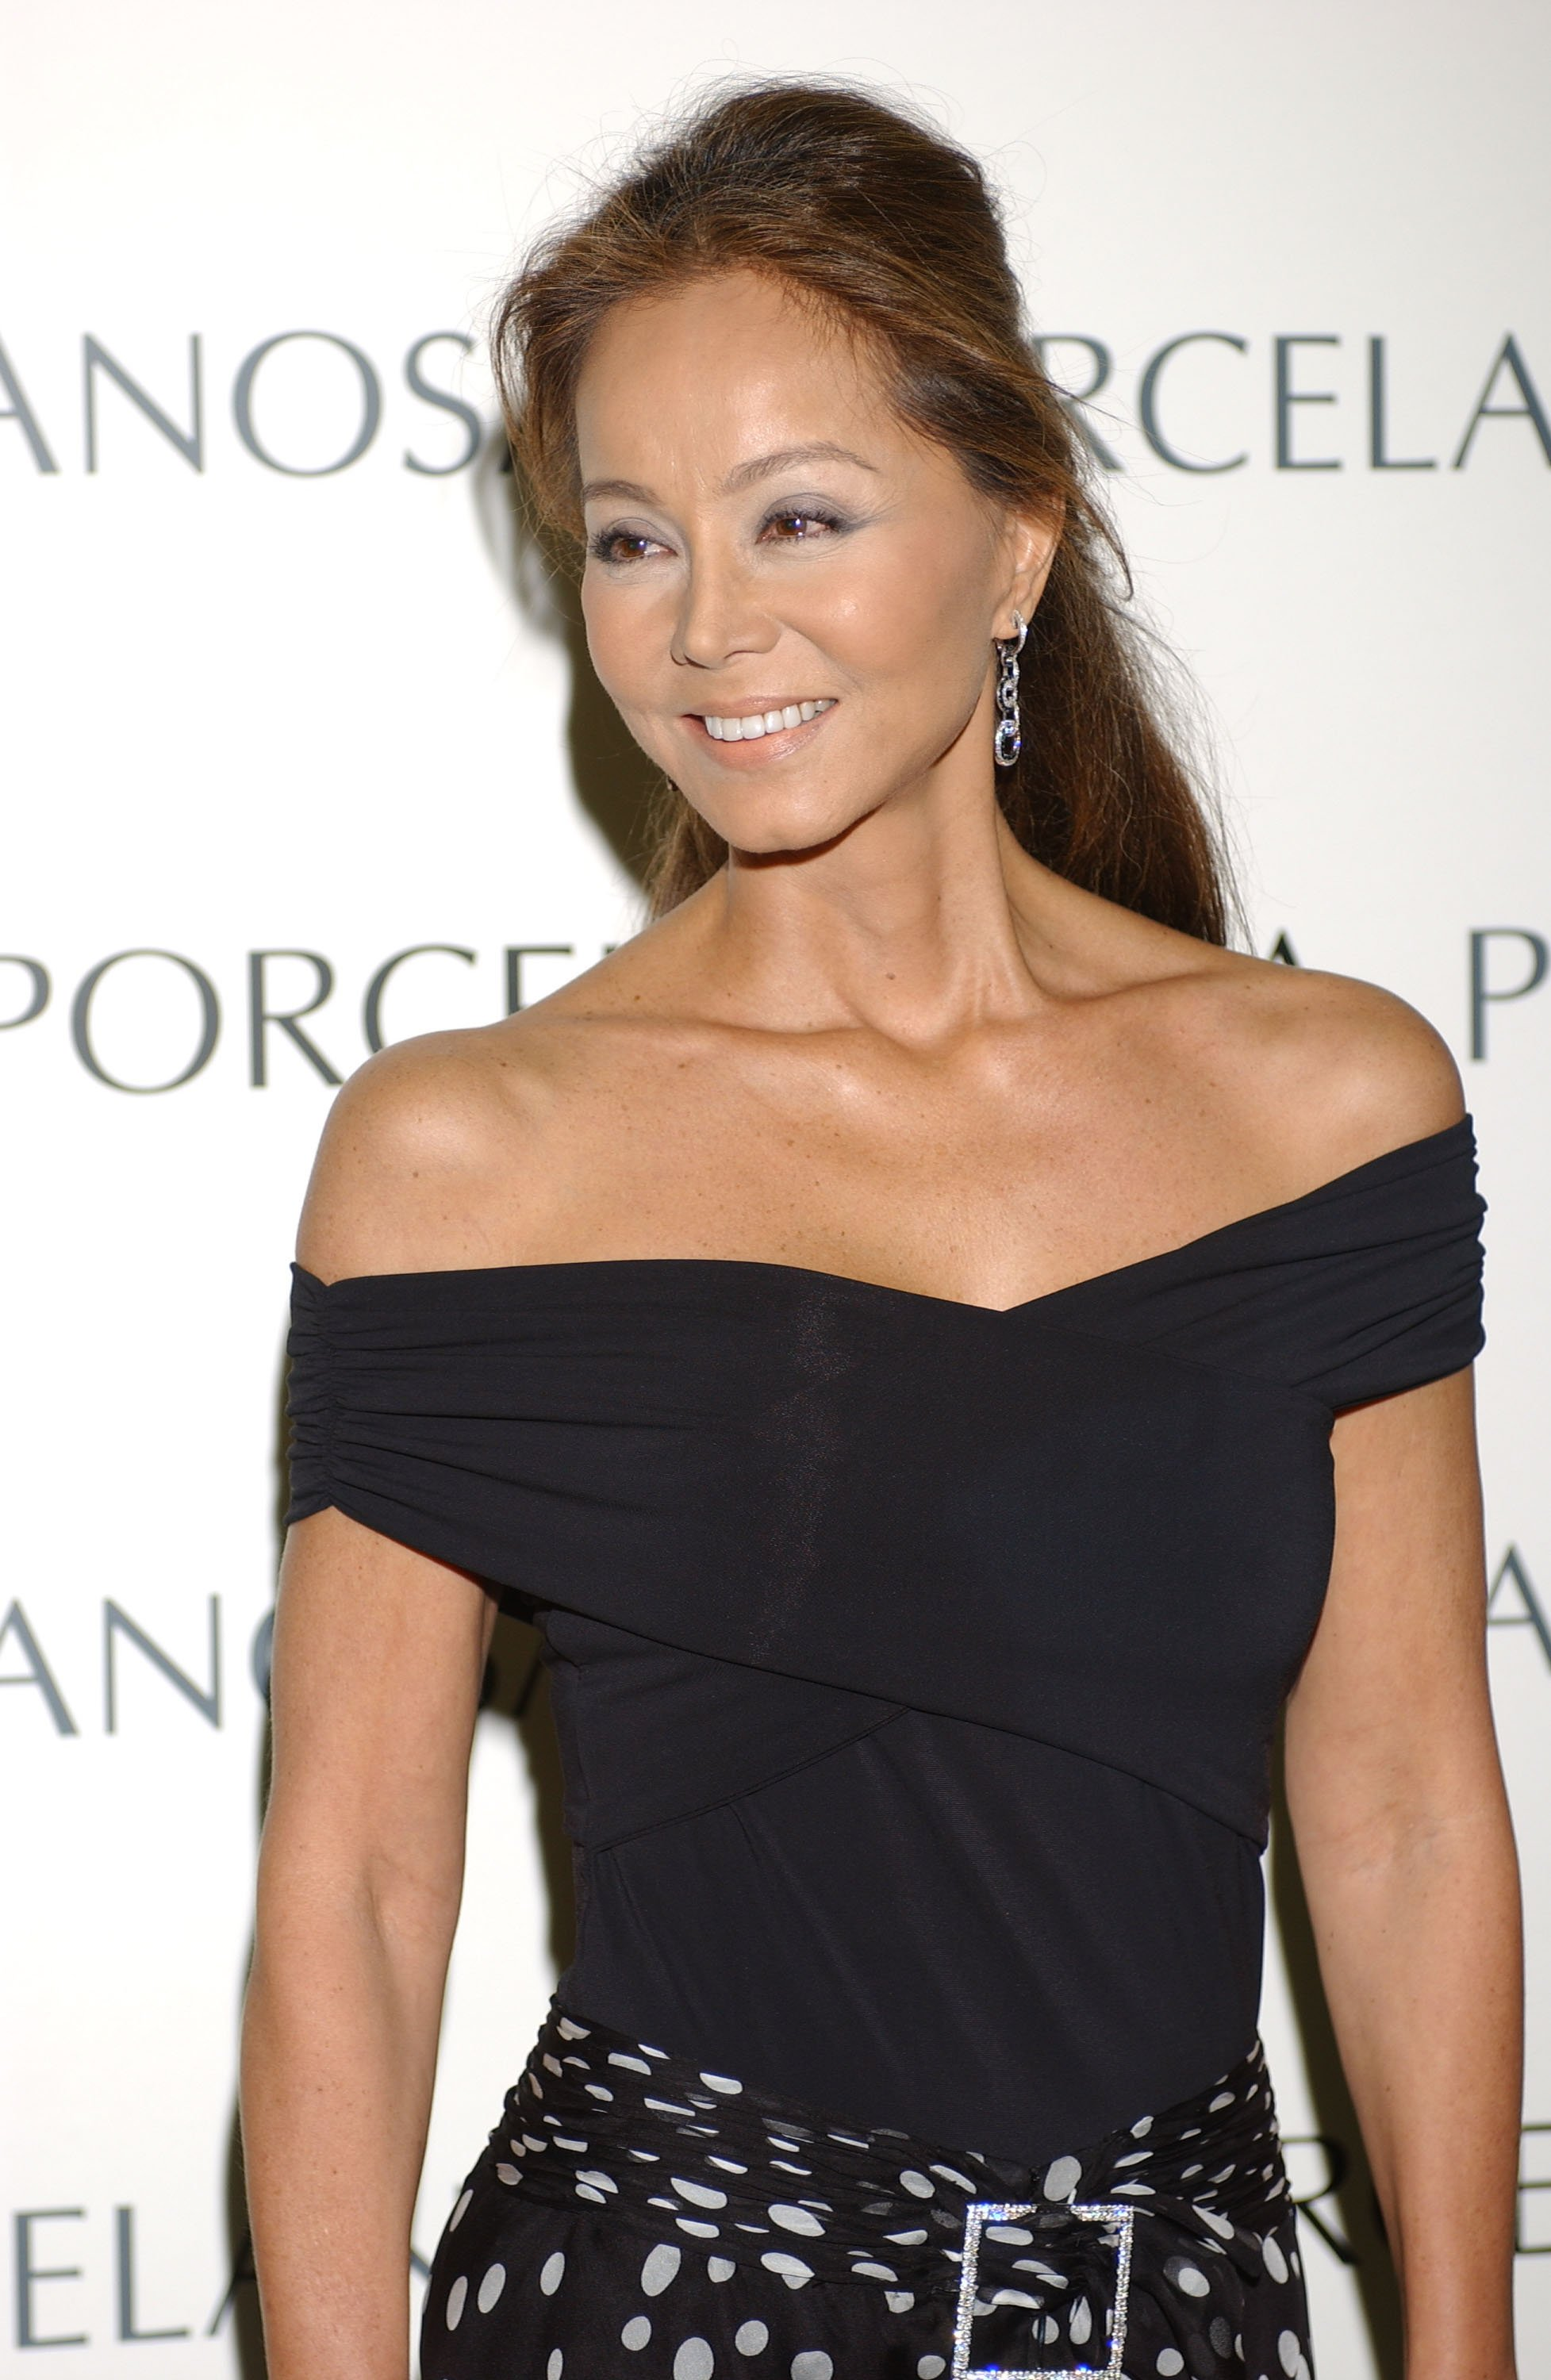 Isabel Preysler en Madrid en mayo de 2005. | Foto: Getty Images